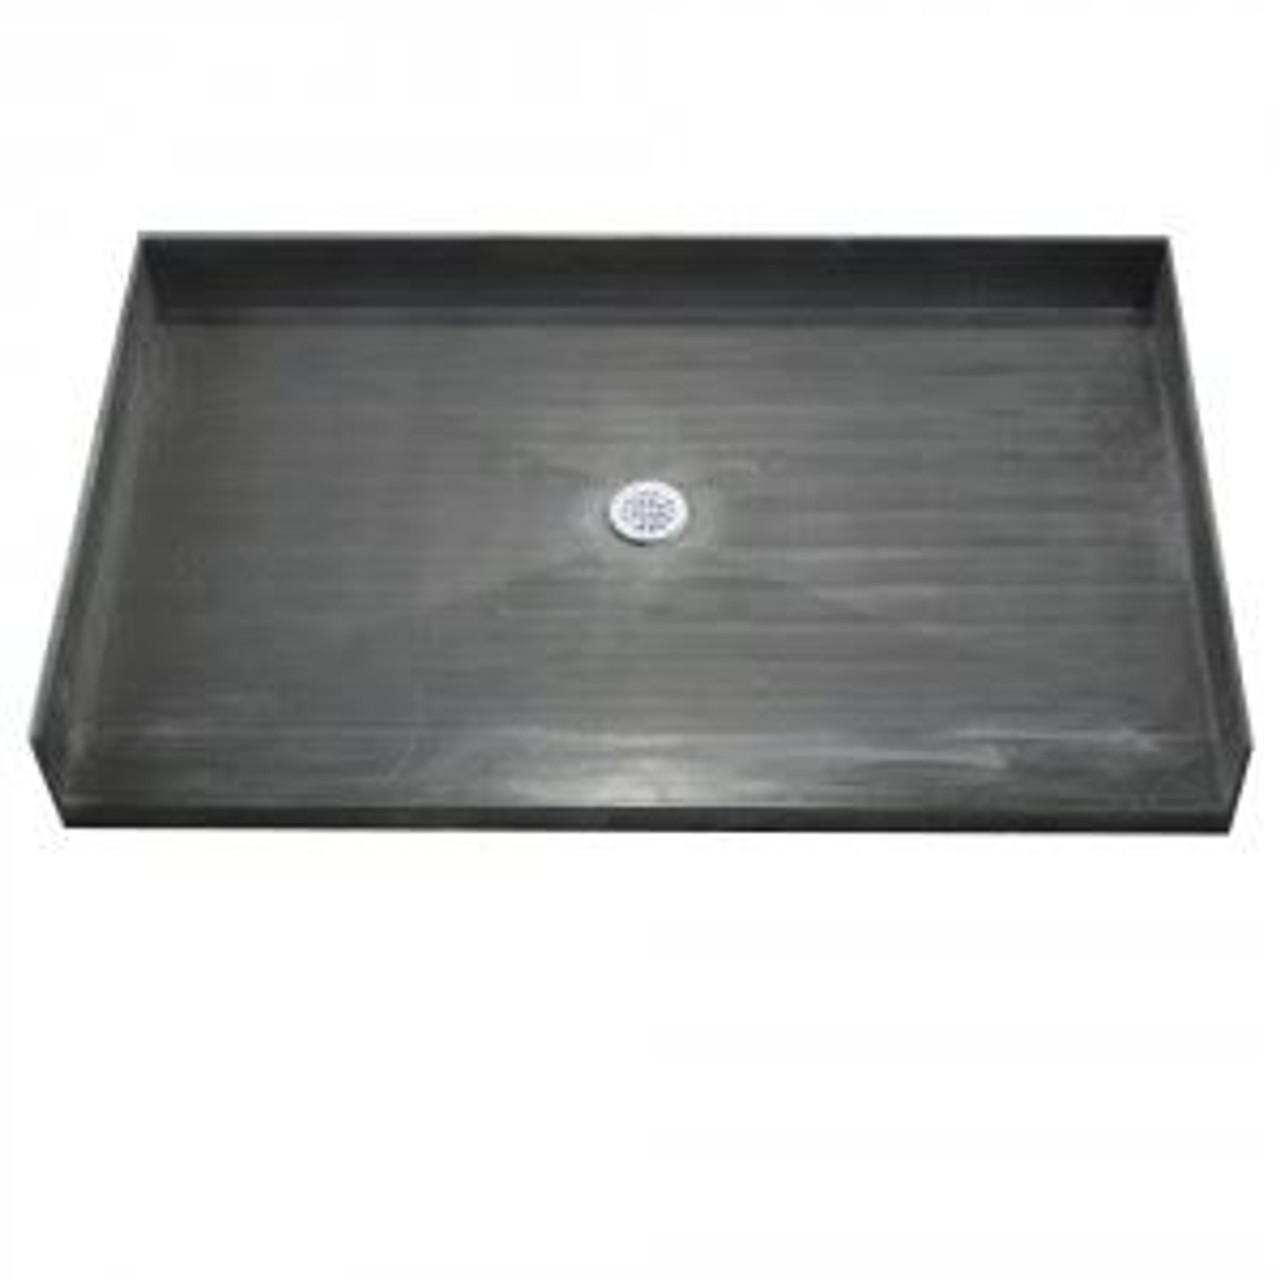 48 x 40 shower pan tile redi curbless with center drain